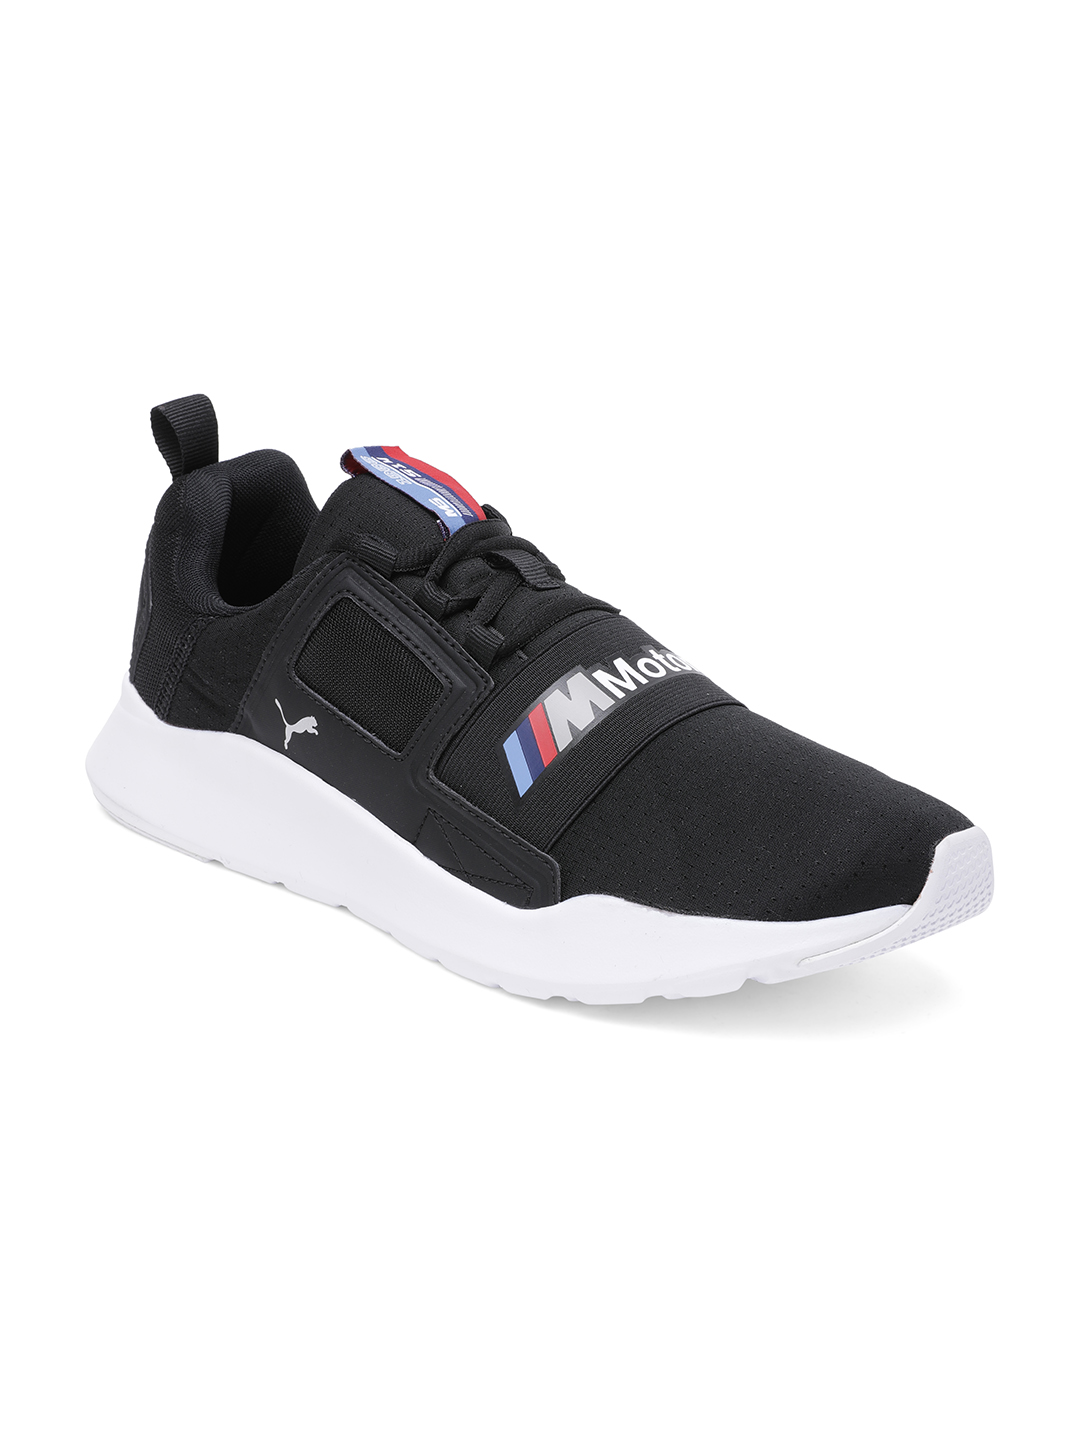 Puma | PUMA BMW MMS WIRED CAGE LIFESTYLE SHOES